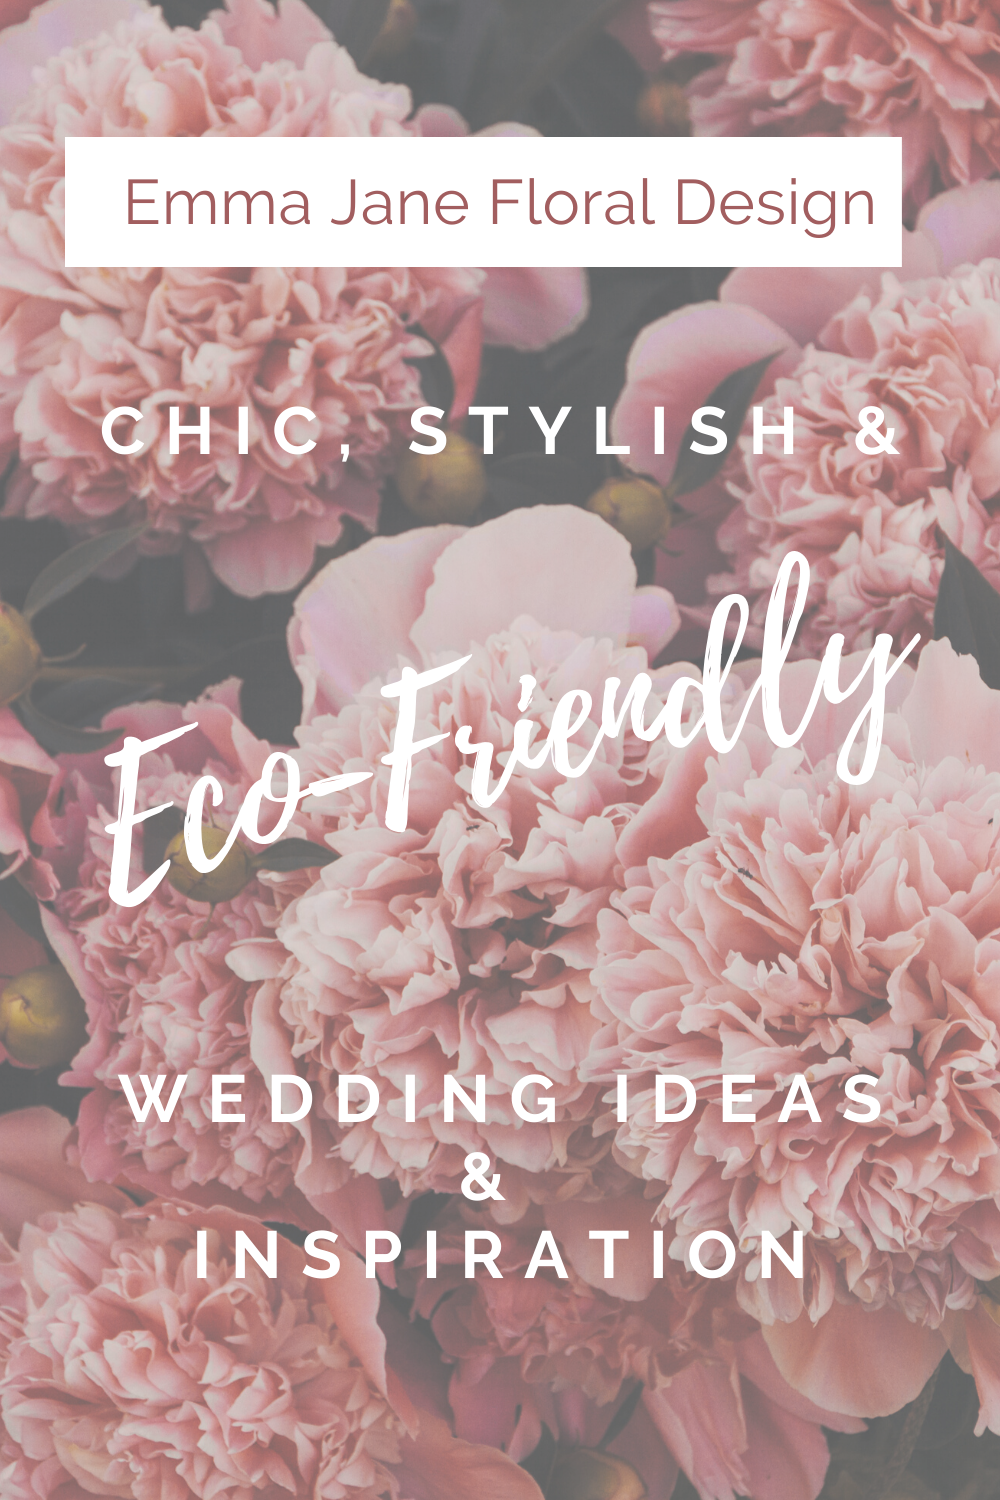 Chic, Stylish And Eco Friendly Wedding Ideas And Inspiration by Emma Jane Floral Design